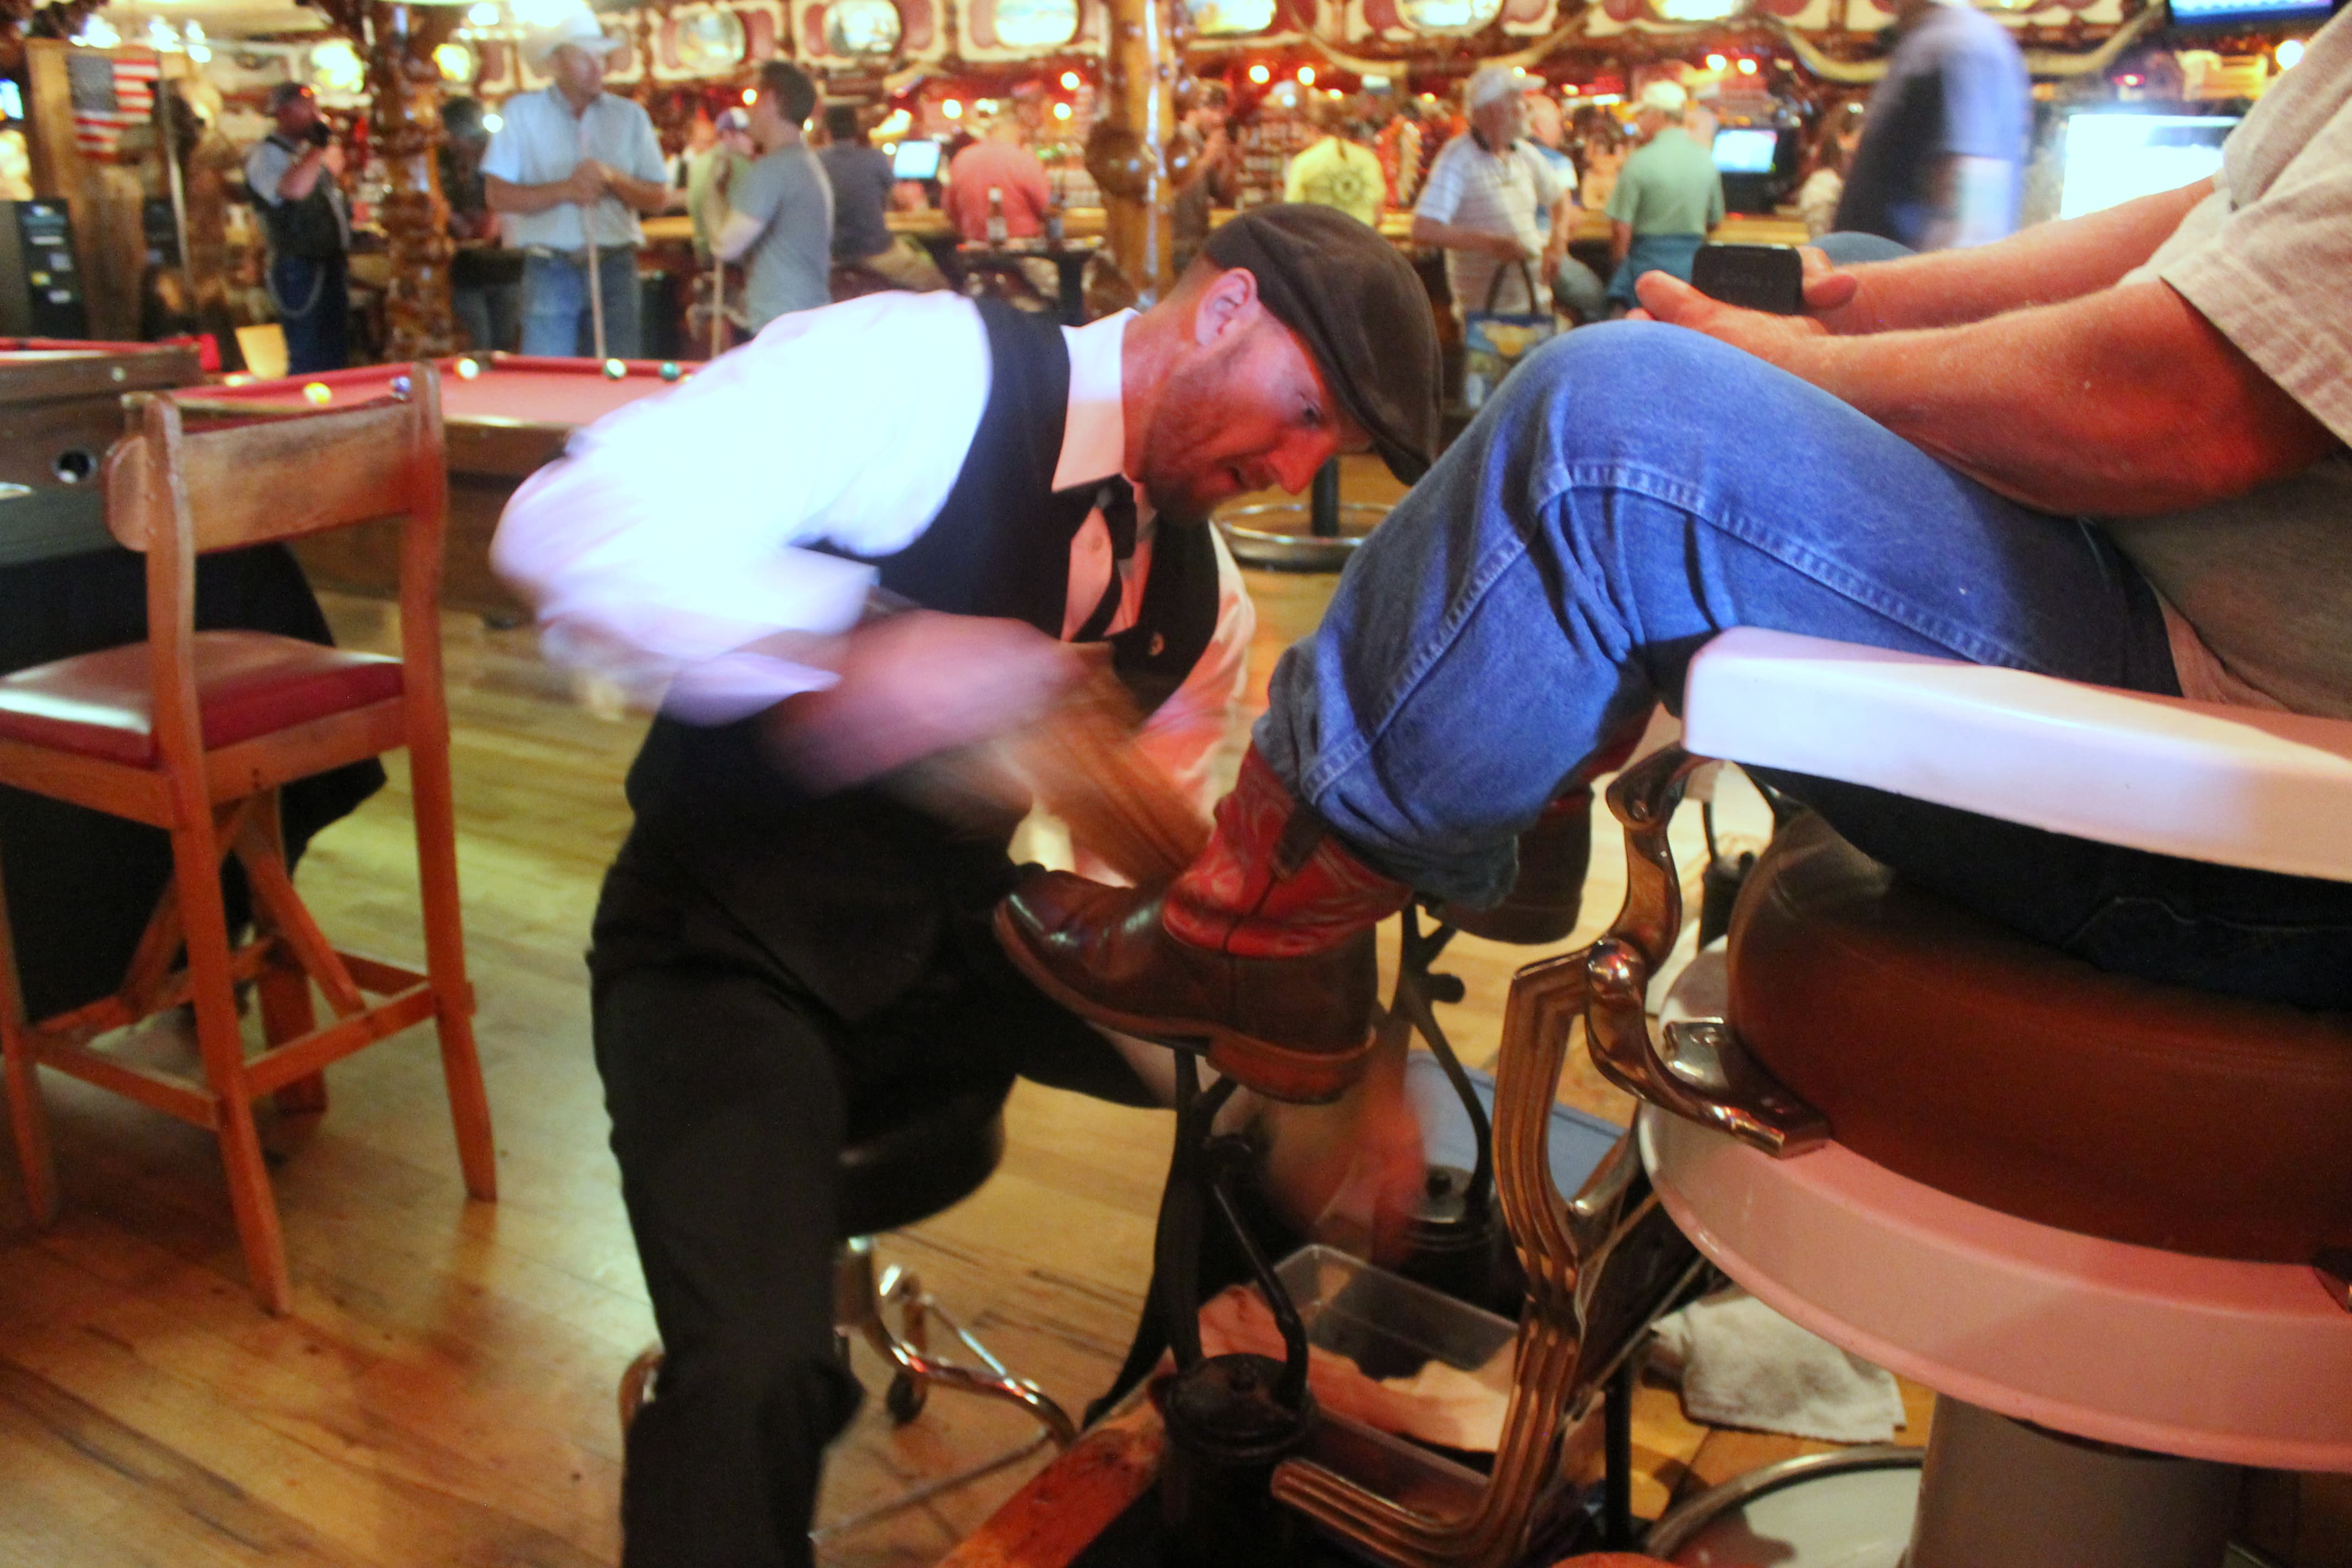 c18186ab5 Tim Tetley works on shining a pair of boots at the Cowboy Bar in Jackson.